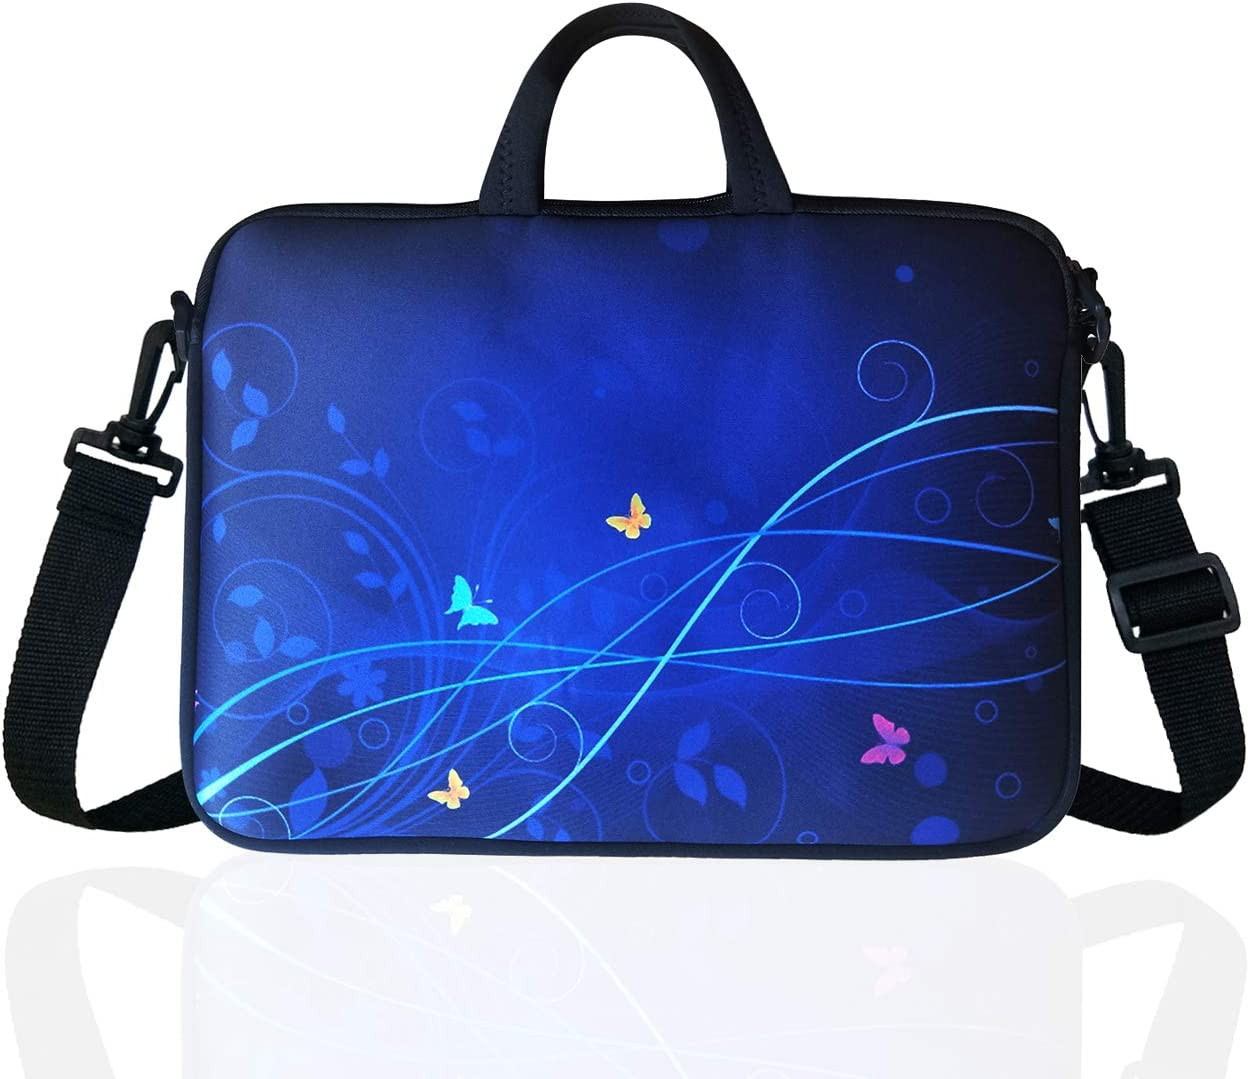 "14-Inch Neoprene Laptop Shoulder Messenger Bag Case Sleeve for 13 13.3 14 14.1"" Inch Notebook/Chromebook (Blue)"